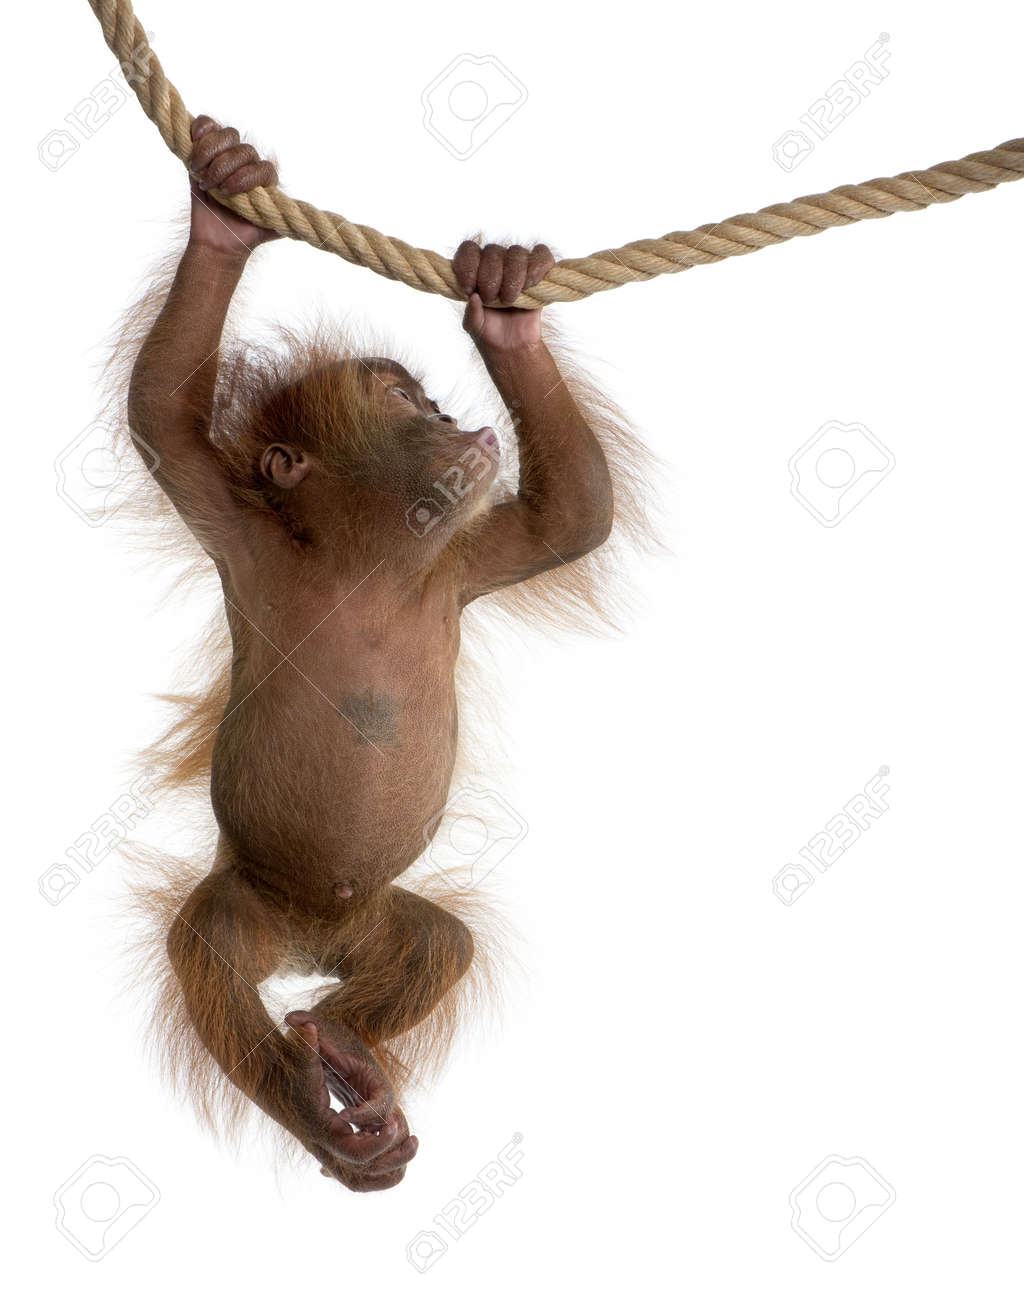 Baby Sumatran Orangutan, 4 months old, hanging from rope in front of white background Stock Photo - 6379267